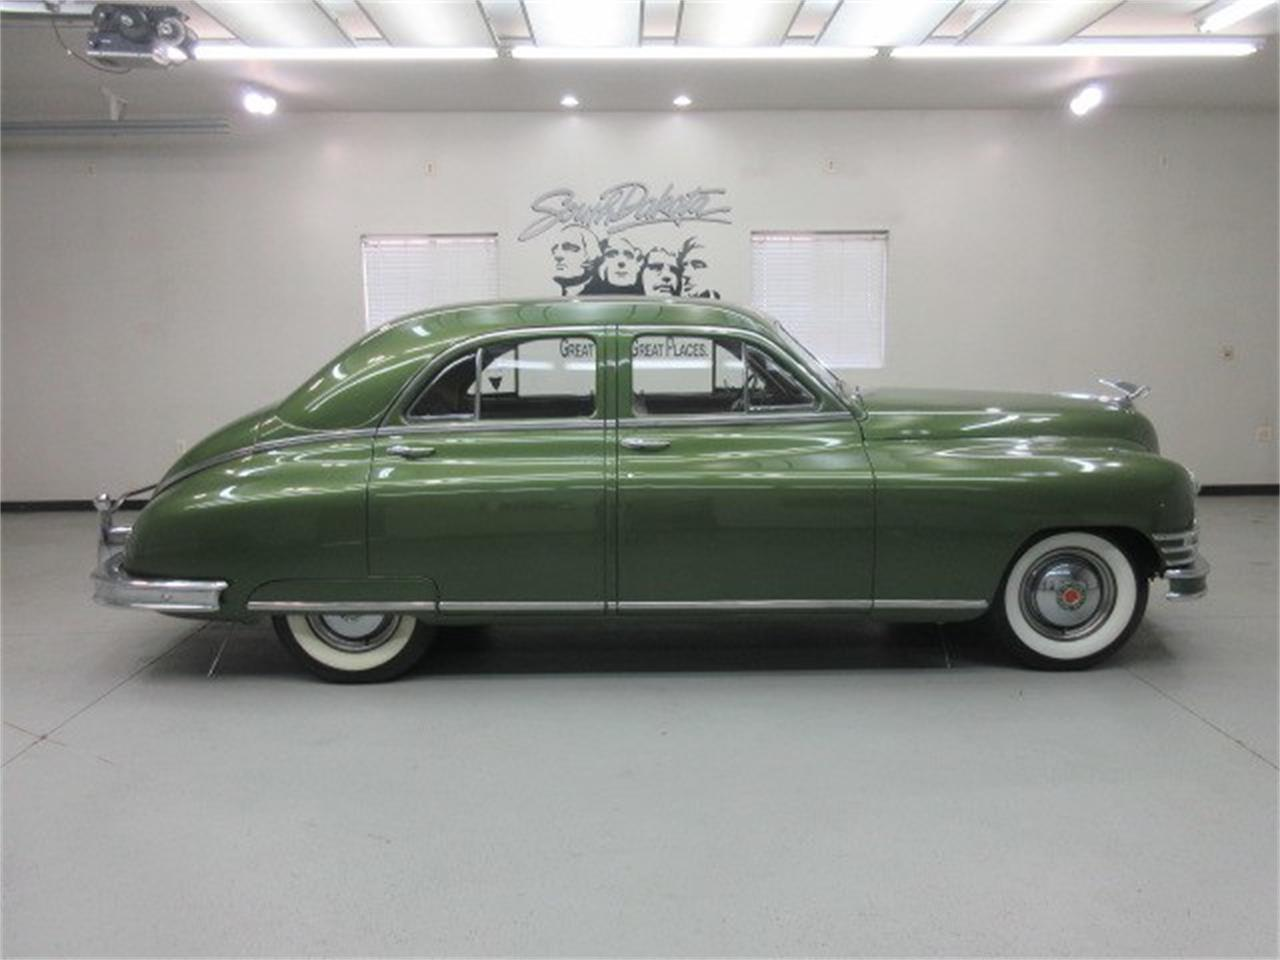 1948 Packard Wiring Diagram Blog Chrysler Deluxe For Sale Classiccars Com Cc 1031359 Windsor